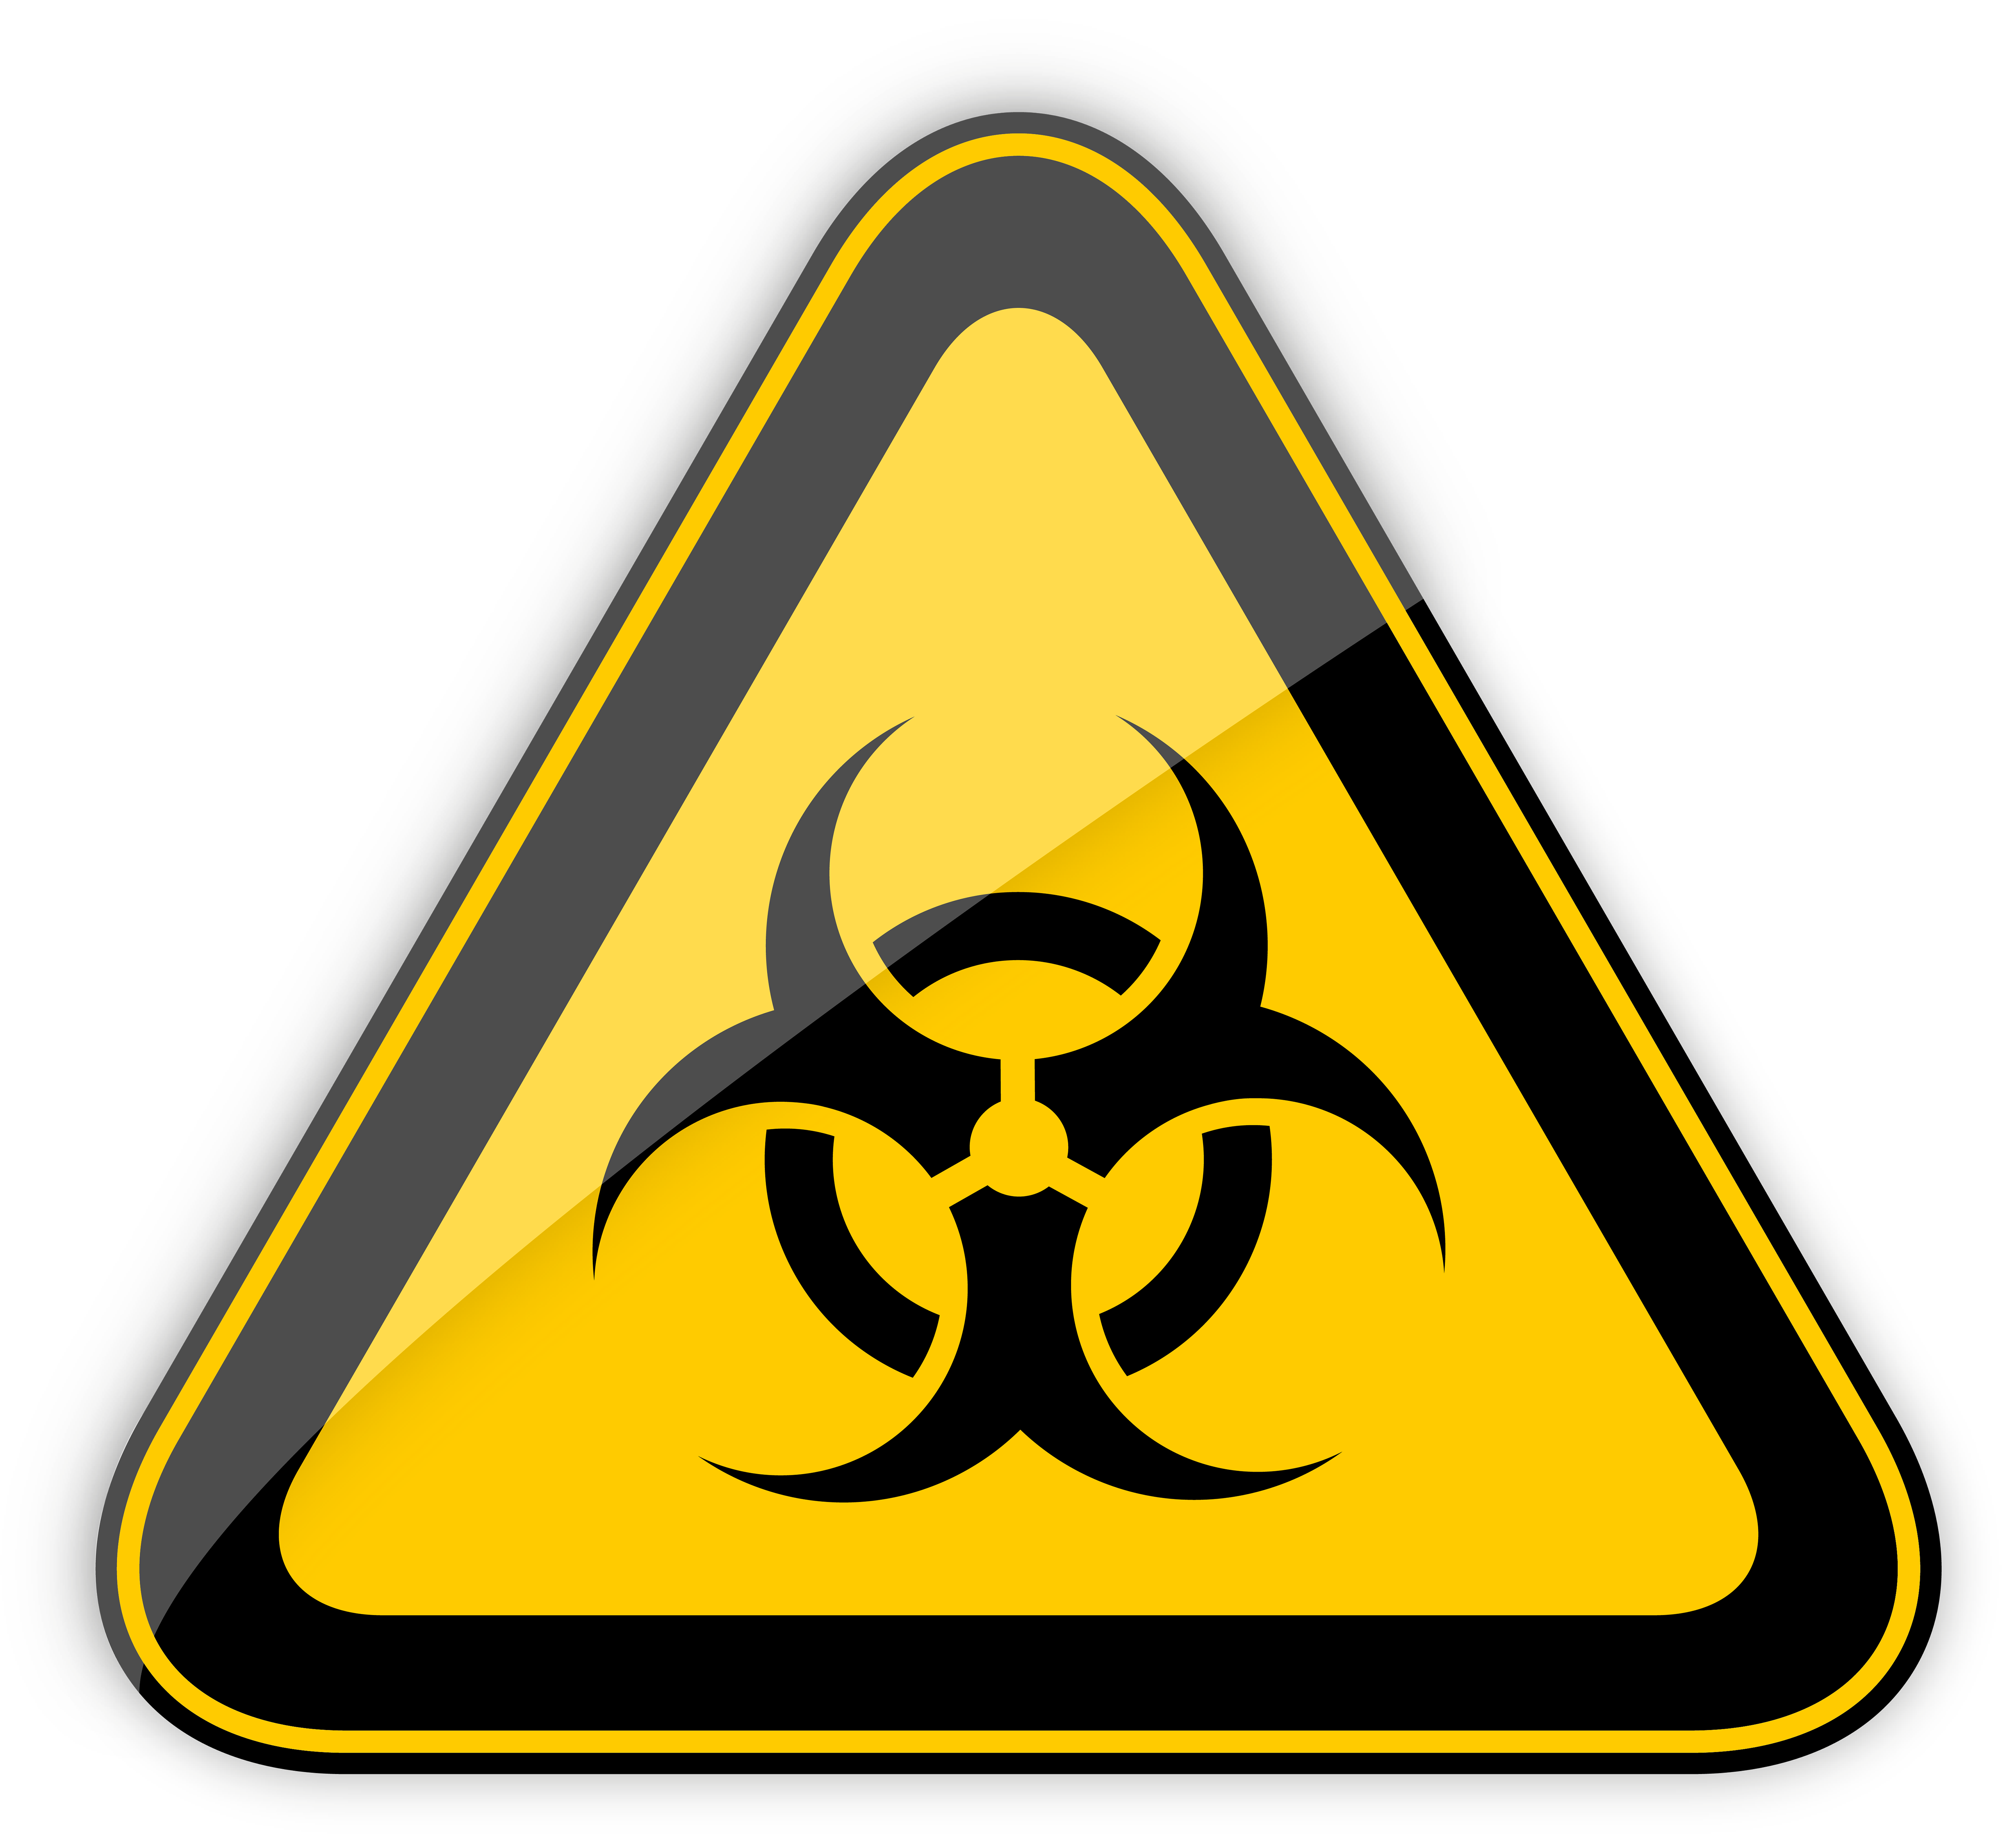 Biohazard transparent clip art. Warning sign png clipart